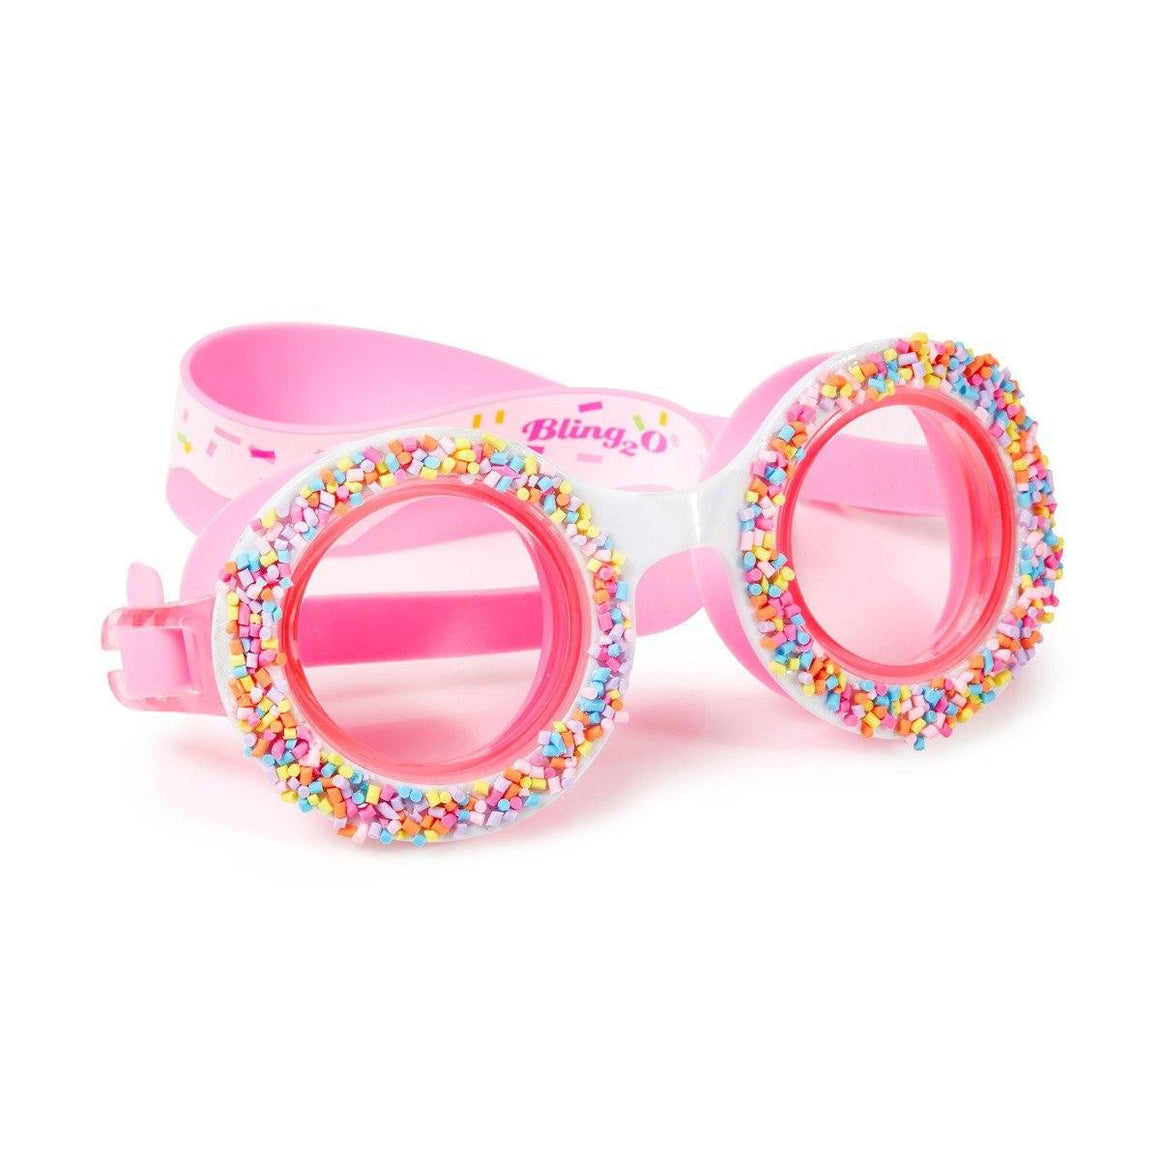 BLING2o GOGGLES - DONUTS 4U BOSTON CREME PINK, Swim goggles, Bling2o - Bon + Co. Party Studio